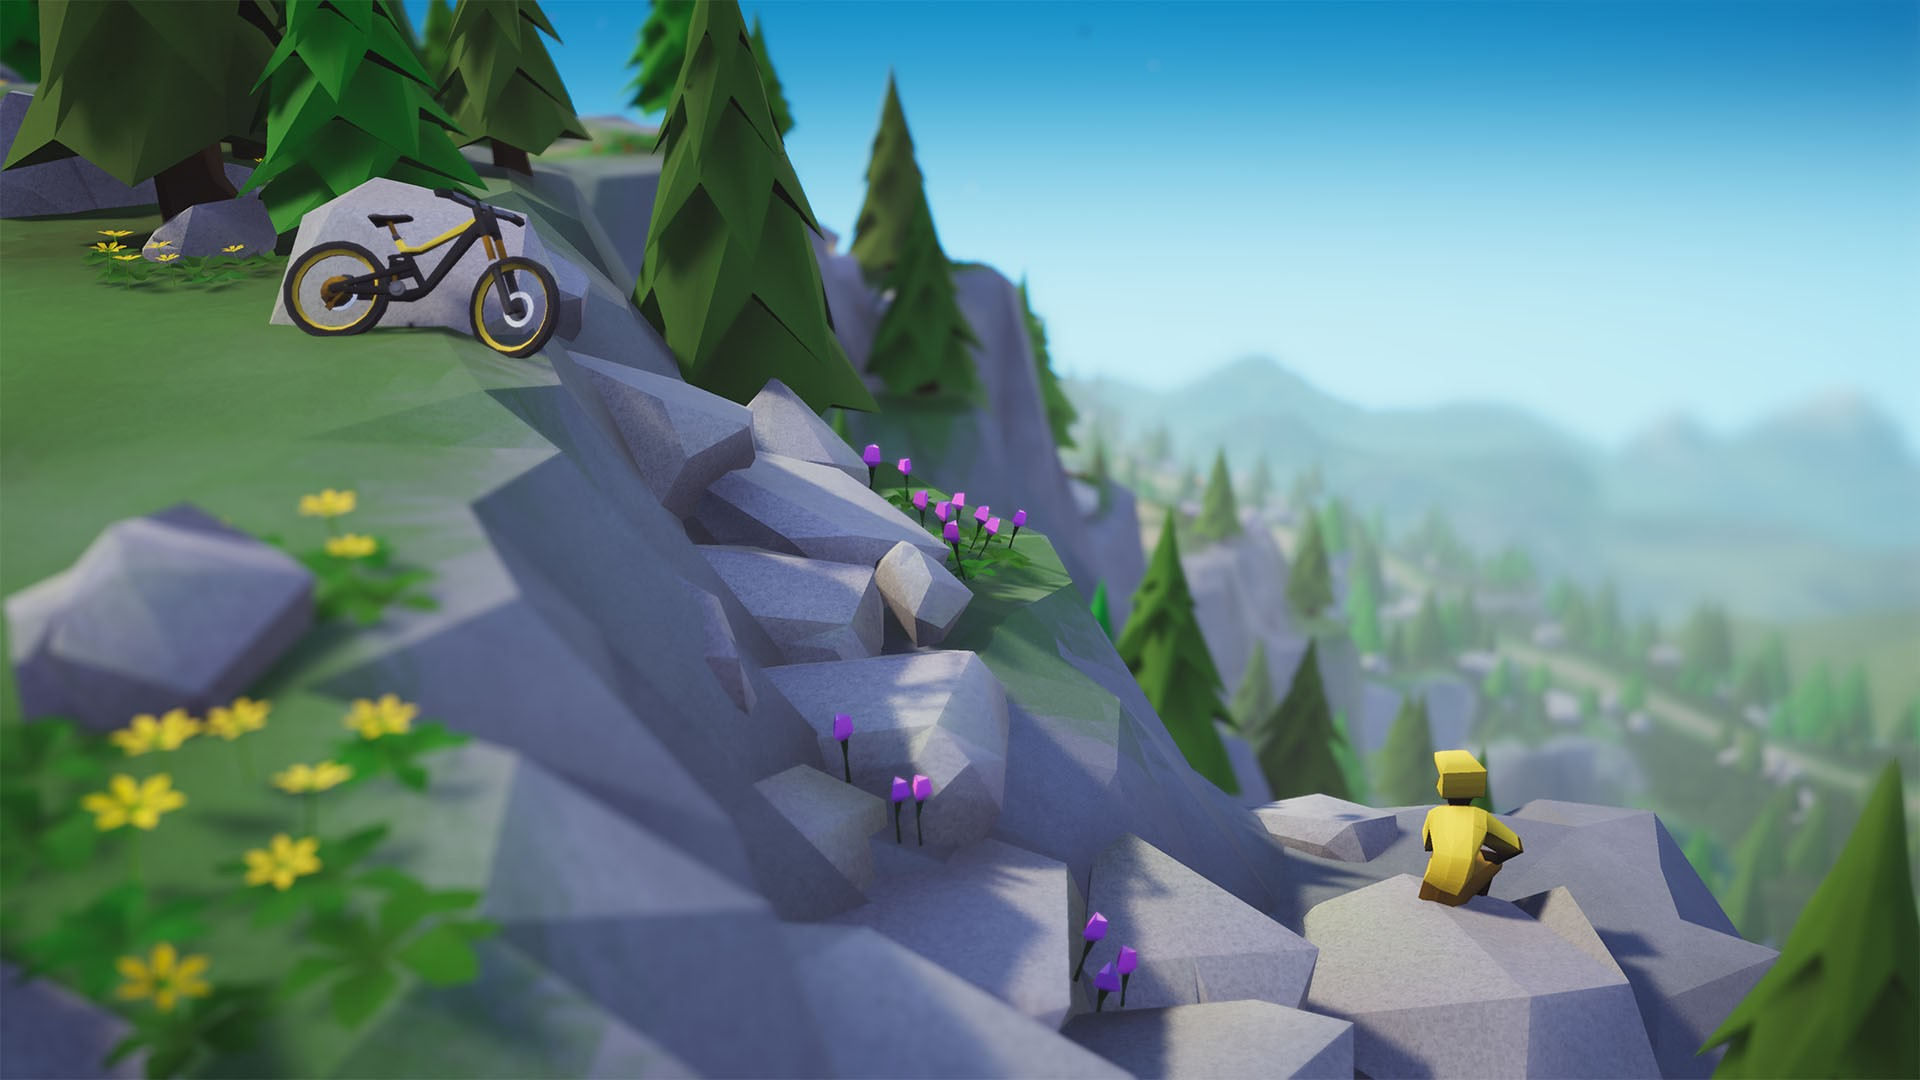 Action, arcade, Bikes, indie, Lonely Mountains: Downhill, Lonely Mountains: Downhill Review, Megagon Industries, Nintendo Switch Review, physics, Racing, Rating 8/10, simulation, Sports, Switch Review, Thunderful Publishing